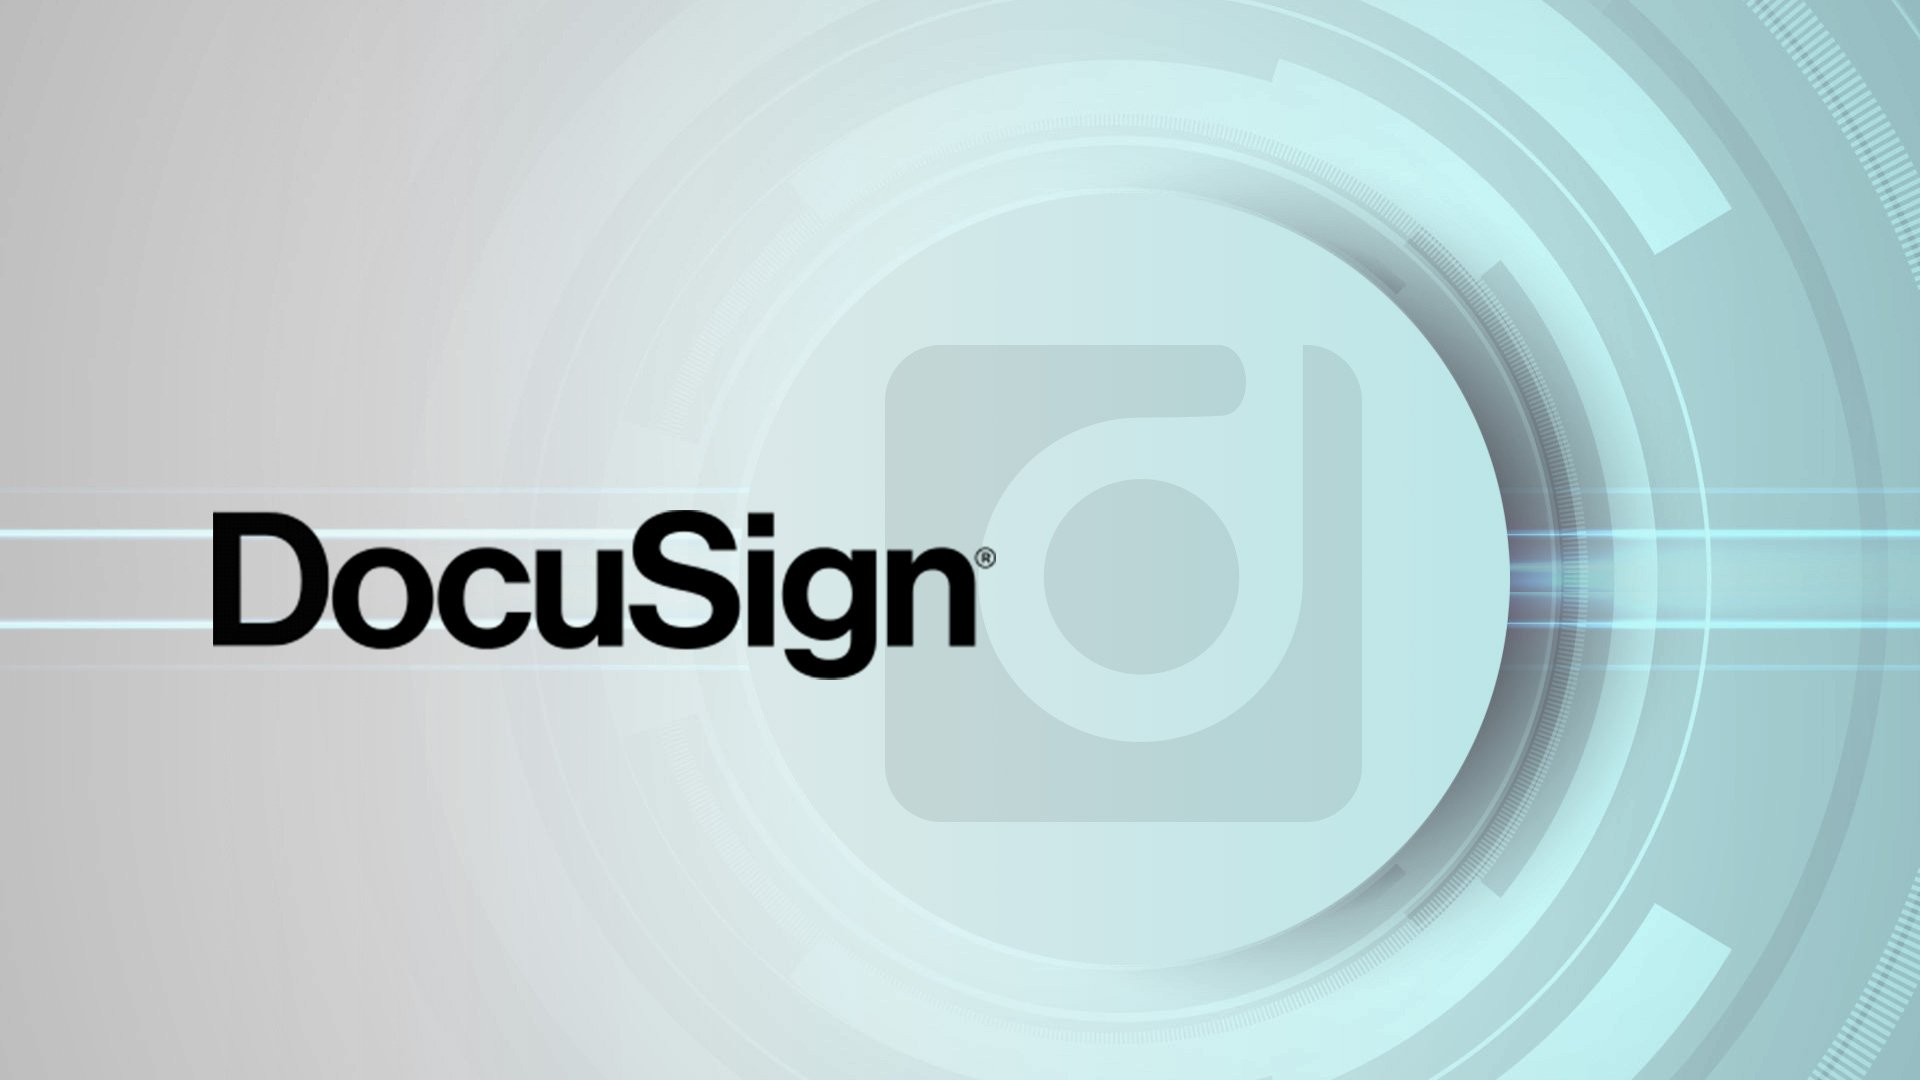 DocsCorp now integrates with DocuSign to help joint users do business faster